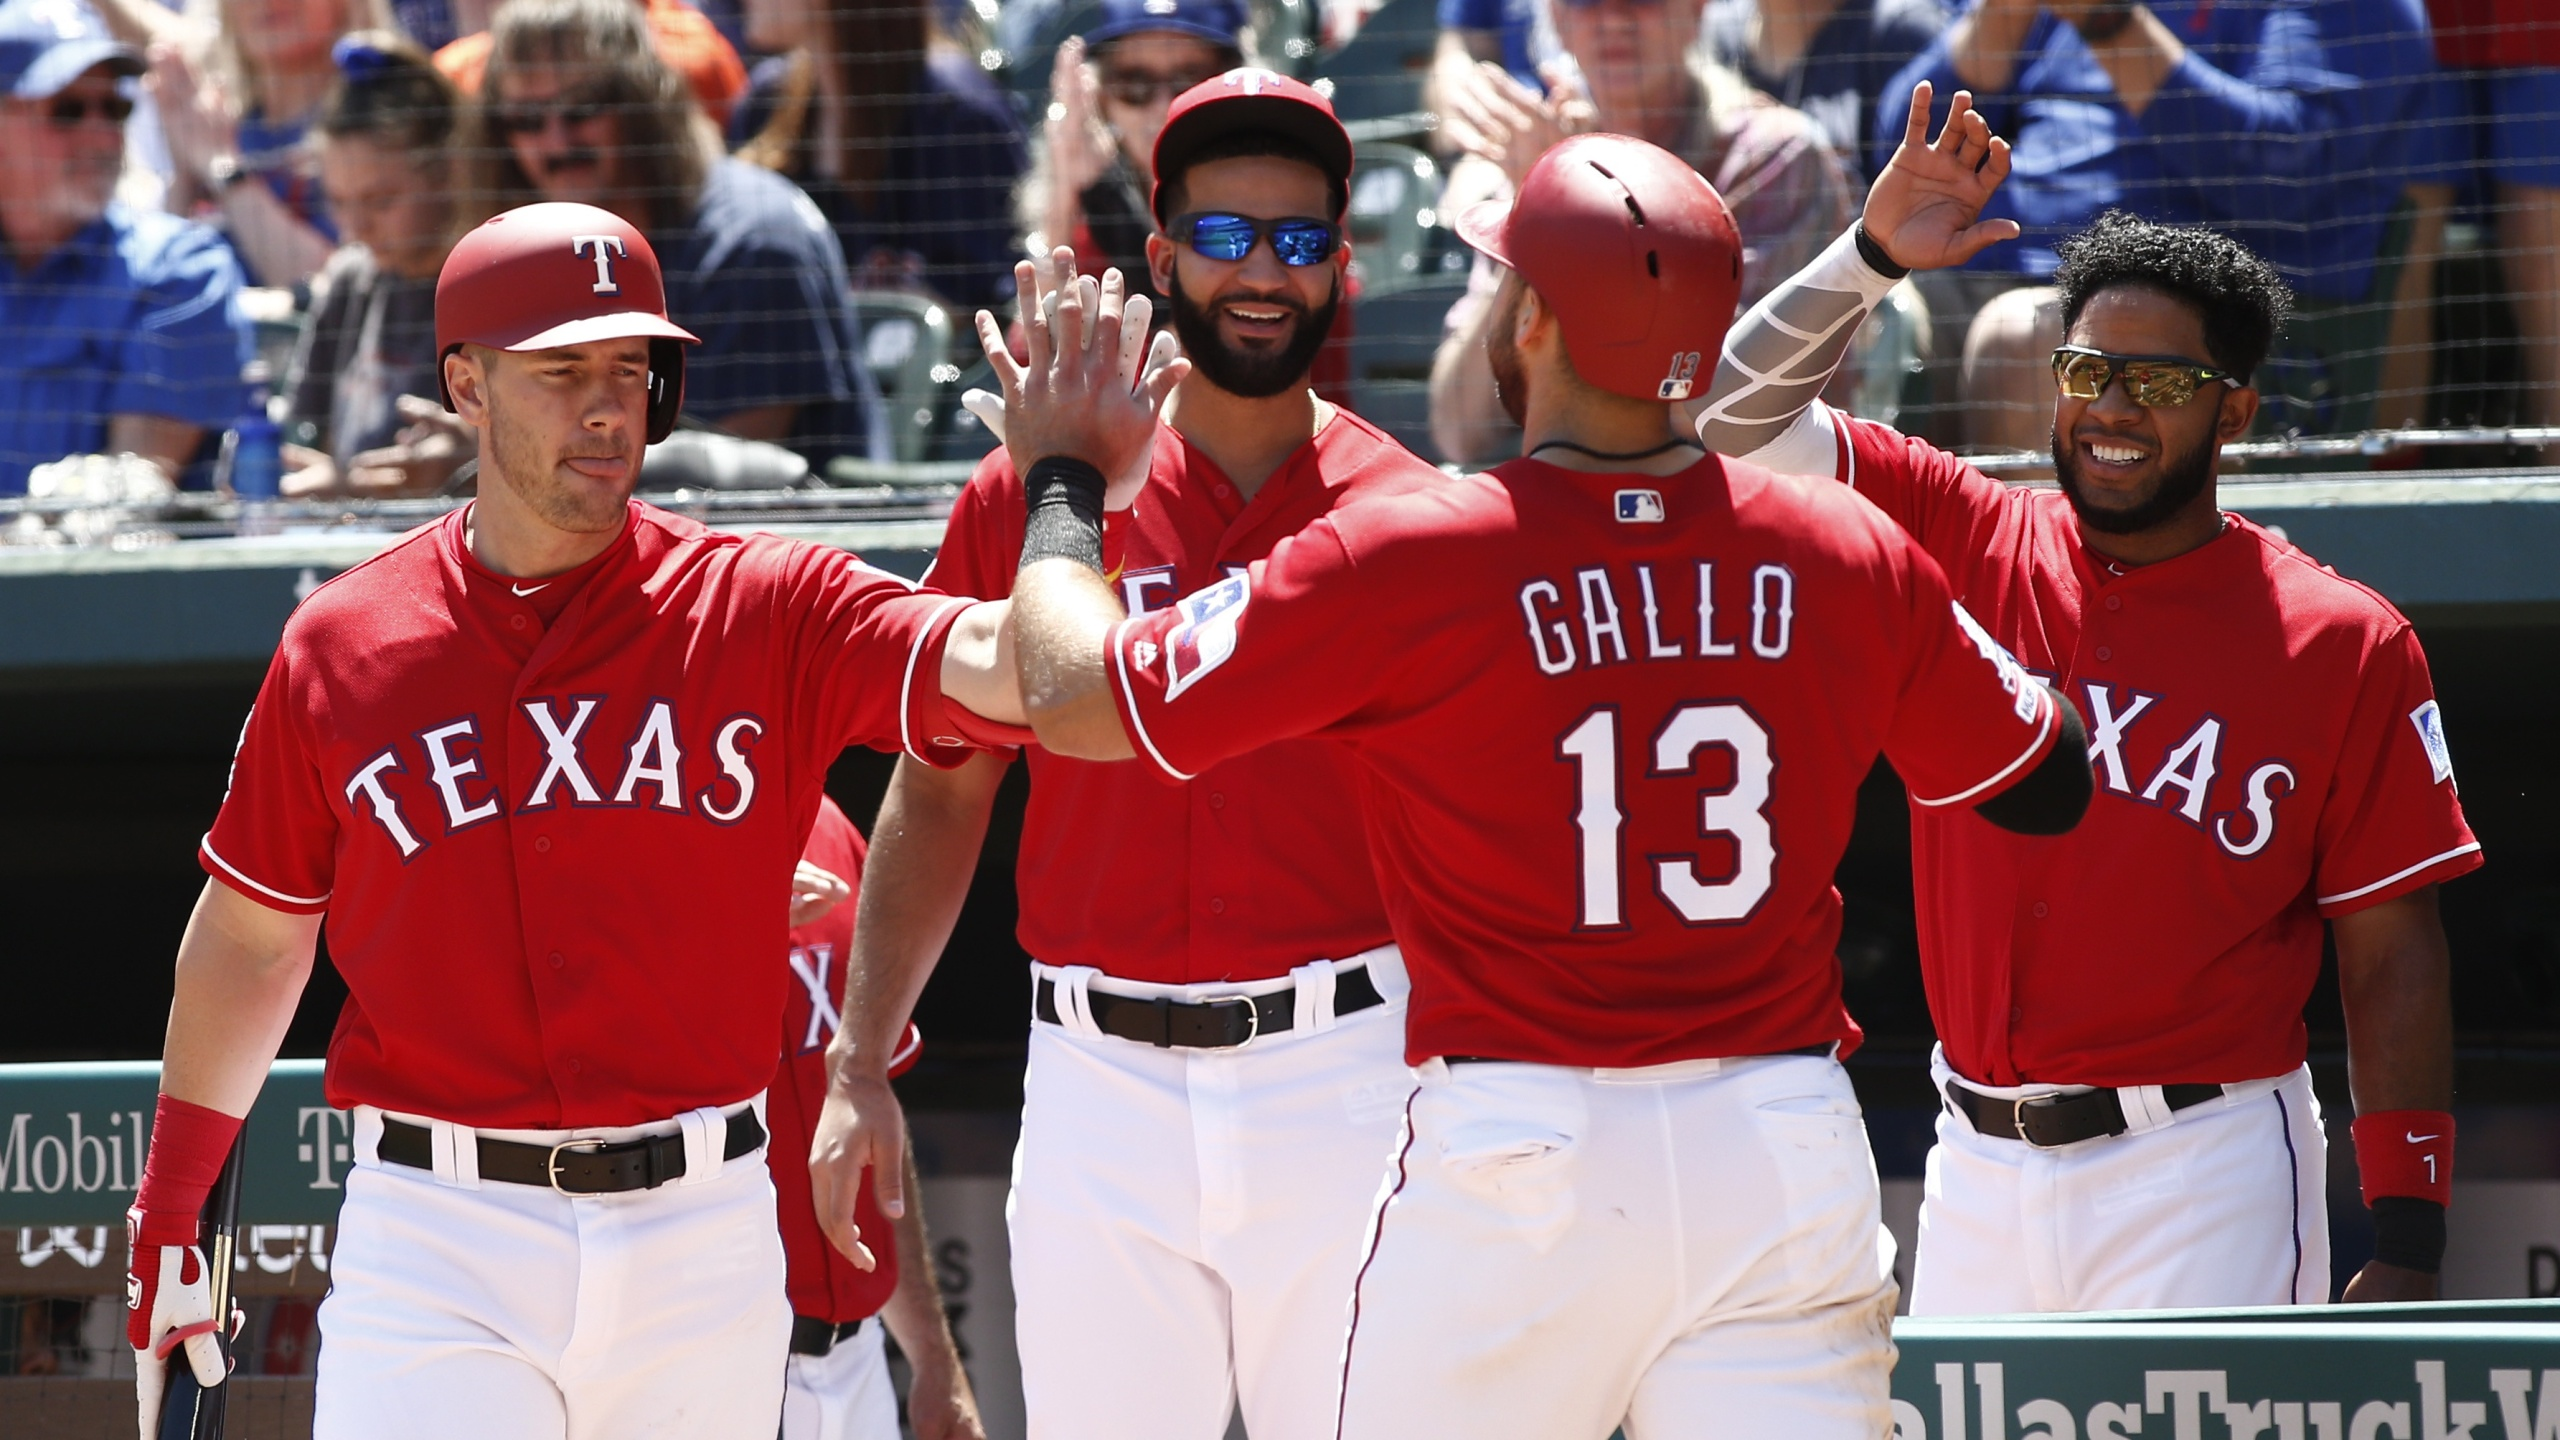 Joey Gallo Rangers-Astros 2019 gm6